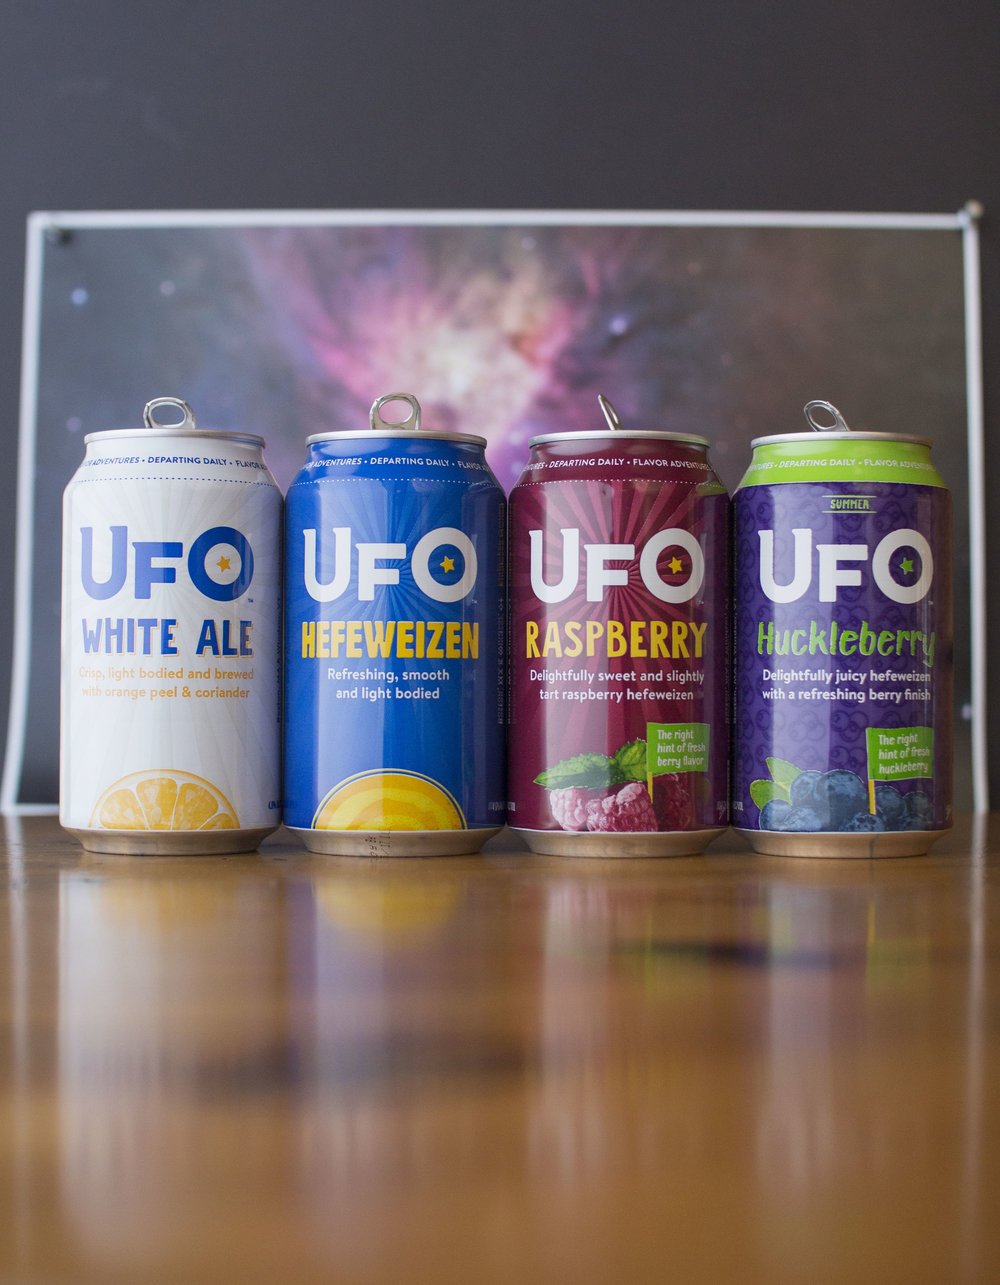 Rebranded can packaging, UFO beer, 2017. Photo courtesy of Harpoon Brewery.